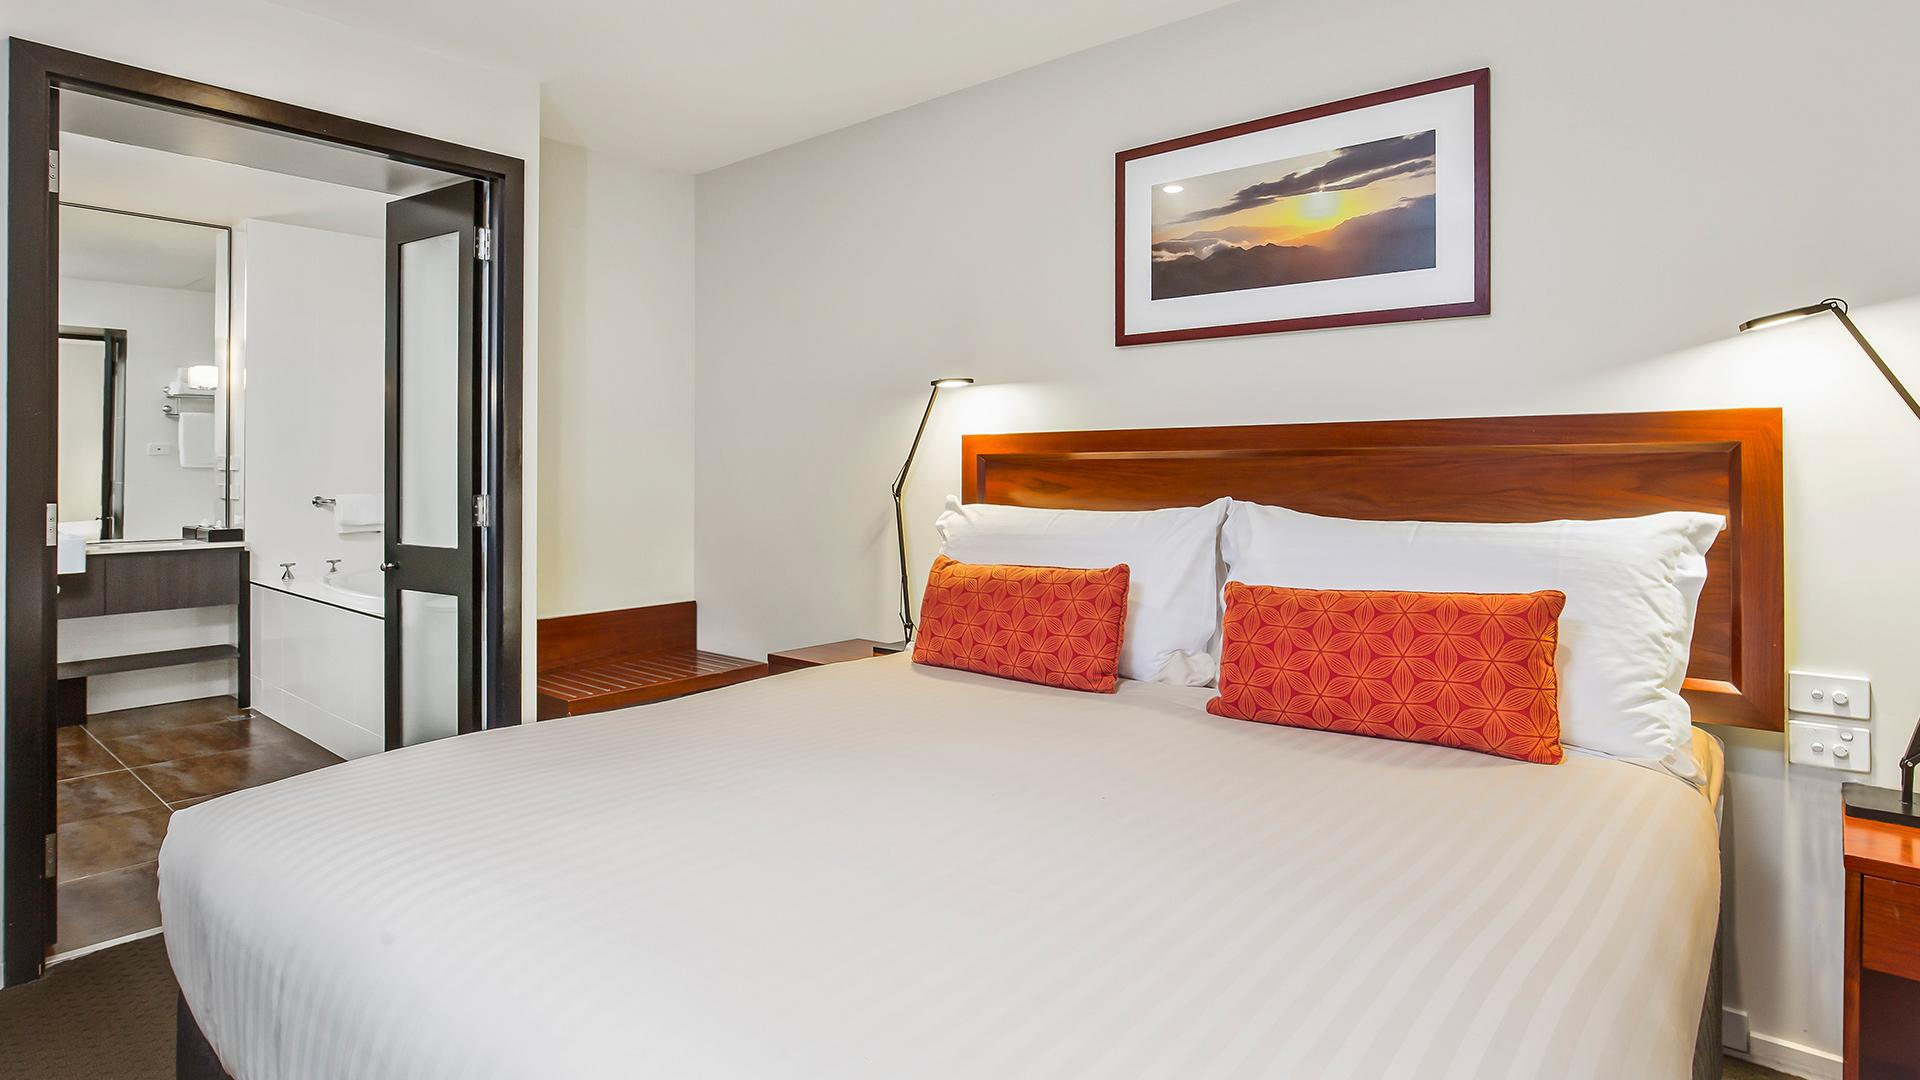 One-Bedroom Deluxe Apartment  image 1 at RACV Hobart Hotel by Hobart City Council, Tasmania, Australia